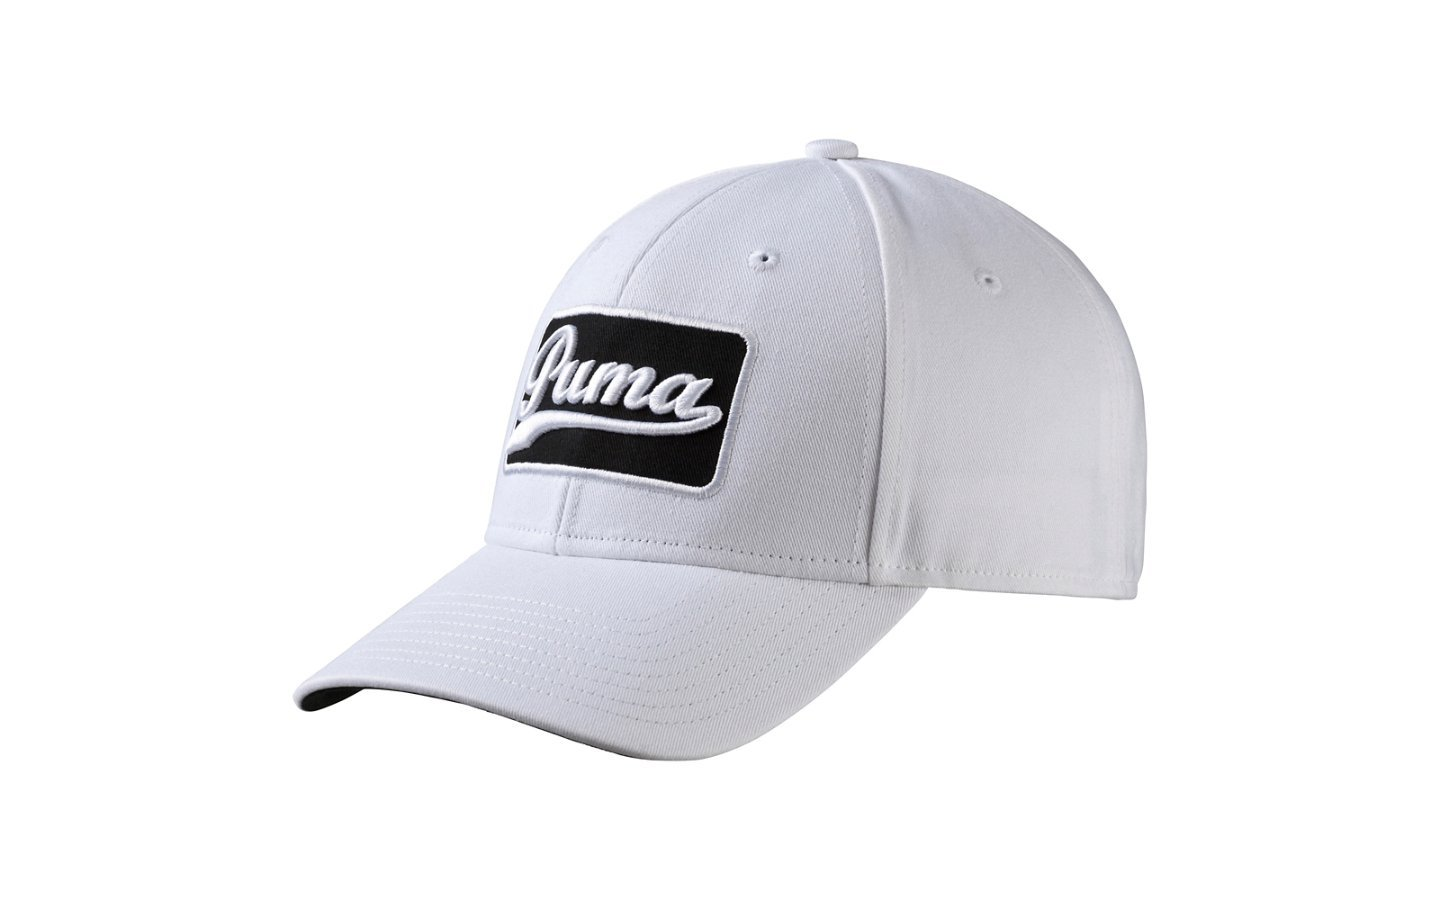 ab2eb611a19 Get Quotations · Puma Greenskeeper Adjustable Cap Golf Hat 052964 02  White Black 2016 New